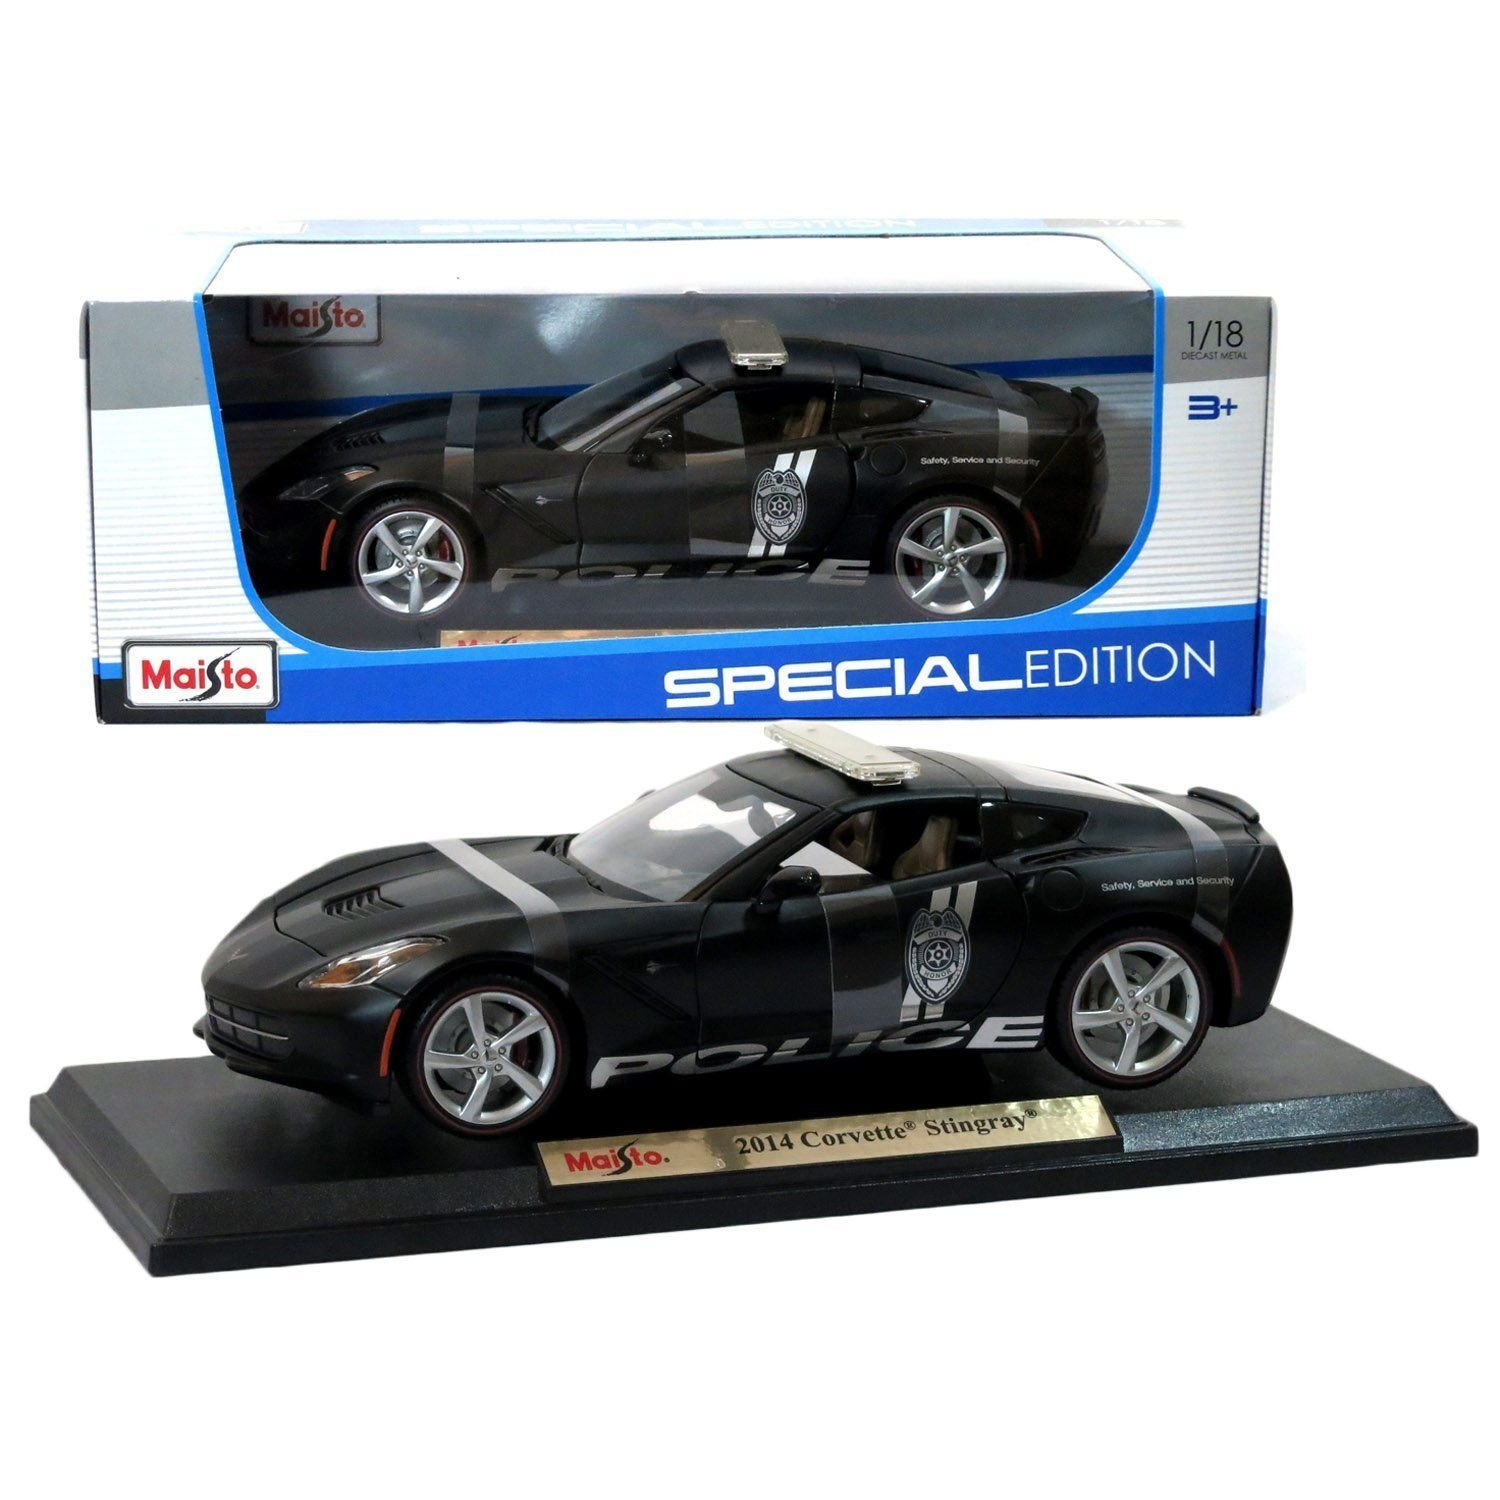 New 1 18 W B SPECIAL EDITION MATTE BLACK 2014 CORVETTE STINGRAY POLICE Diecast Model Car By Maisto